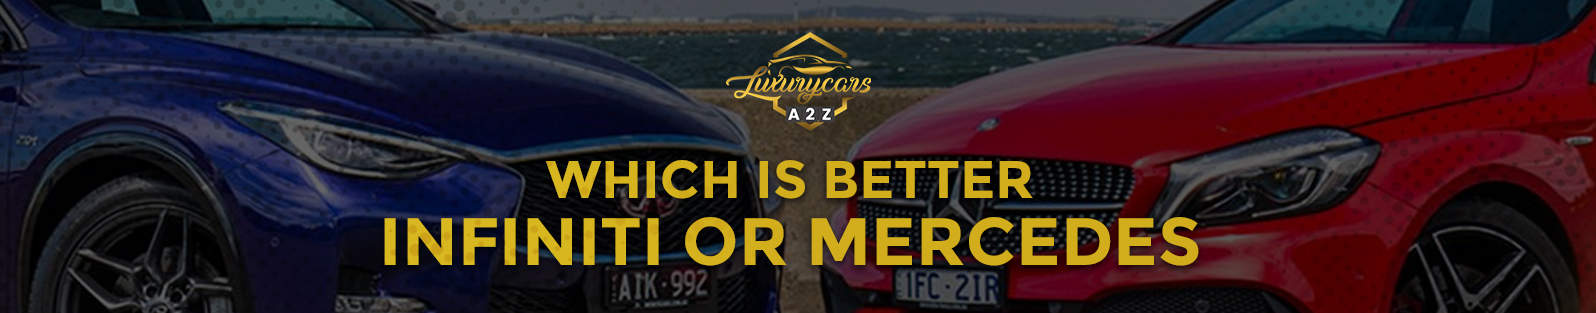 which is better infiniti or mercedes